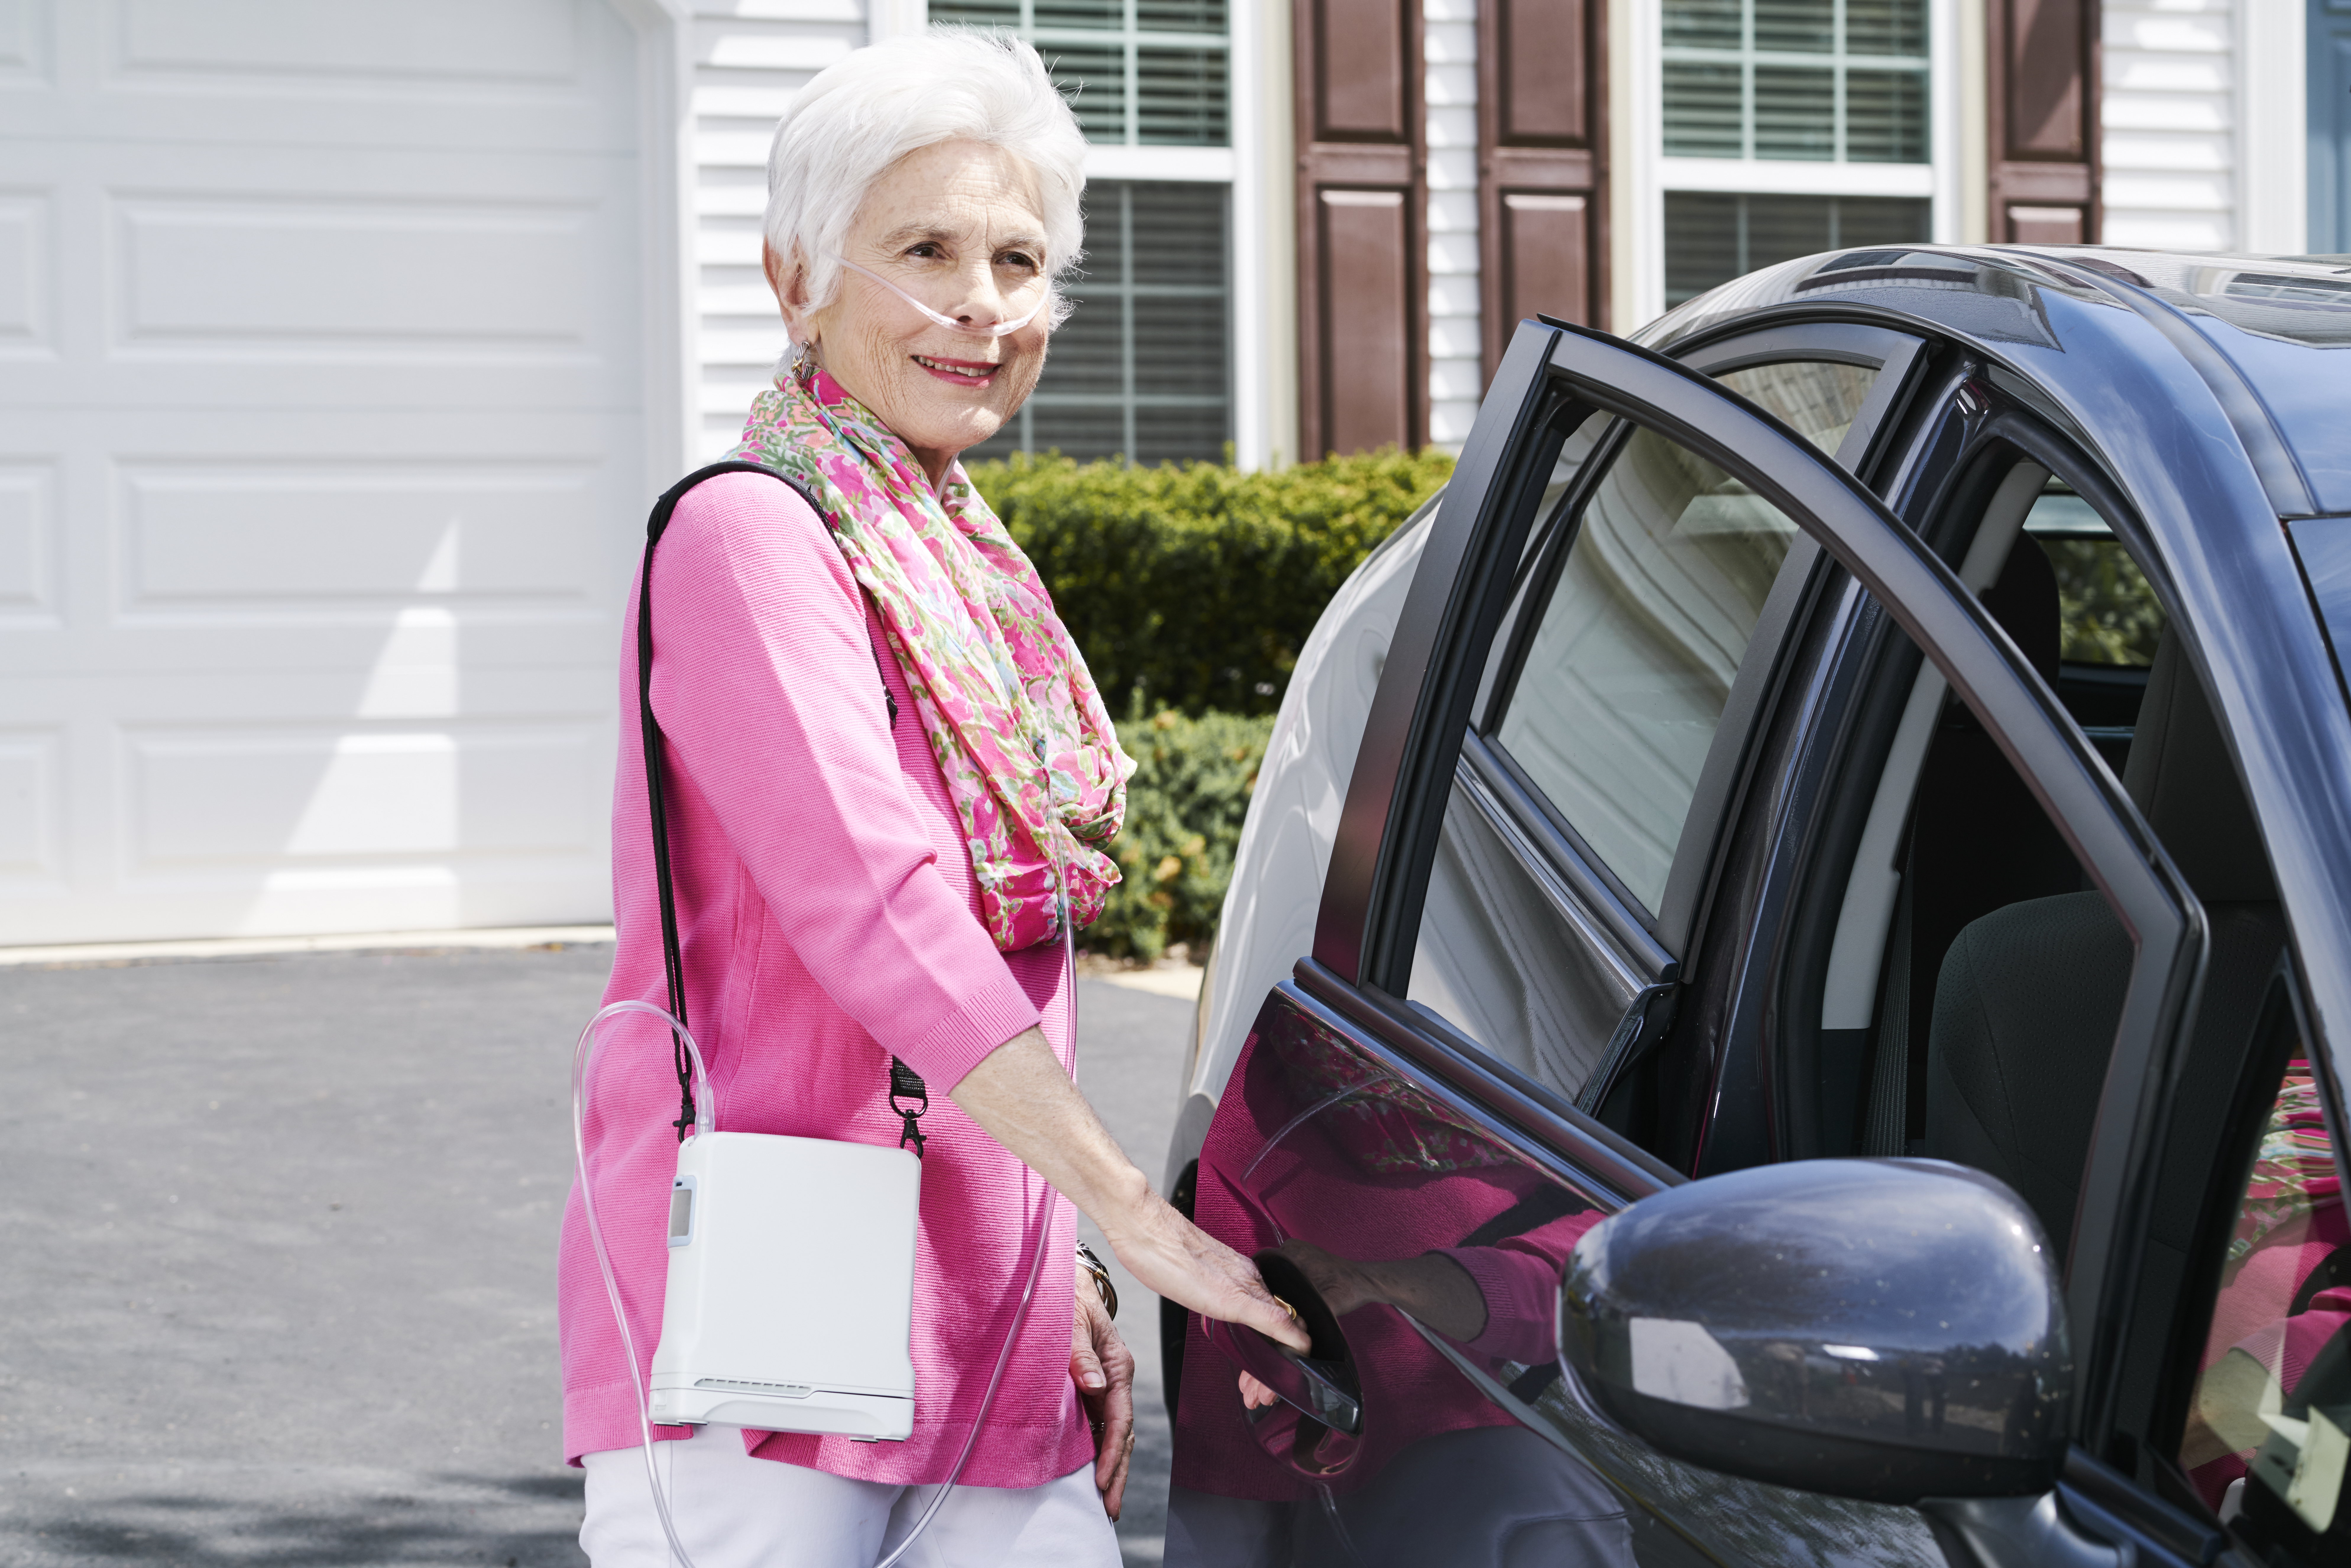 Inogen G4 Lady In Pink by Car.jpg